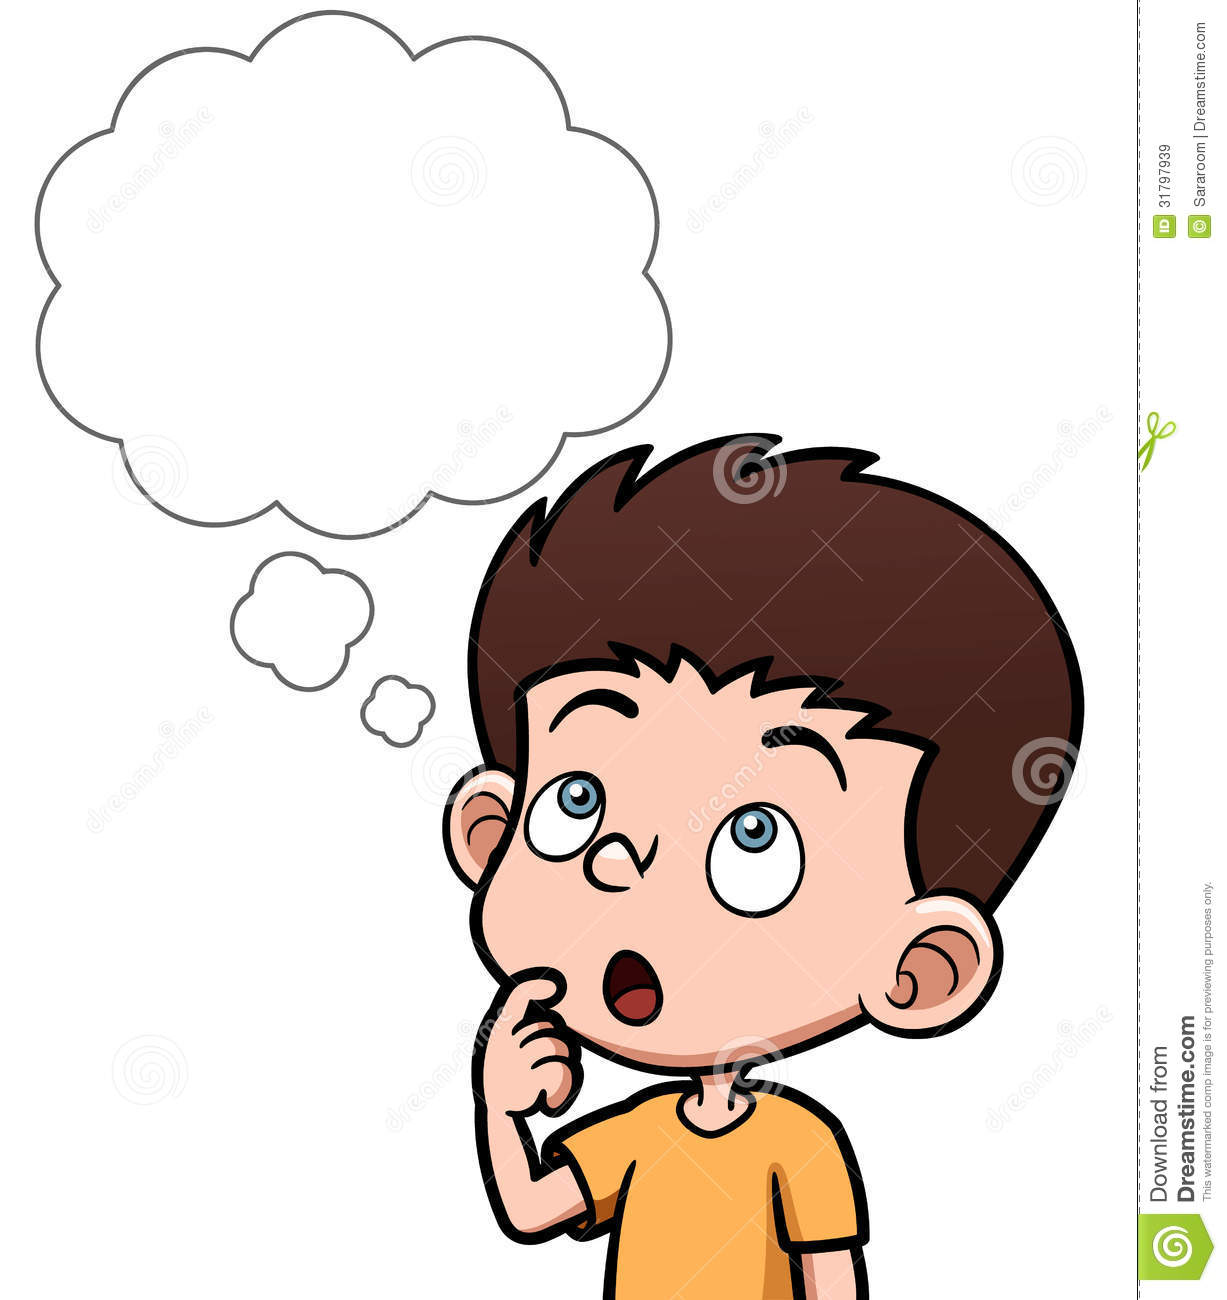 1227x1300 Child Thinking Clipart